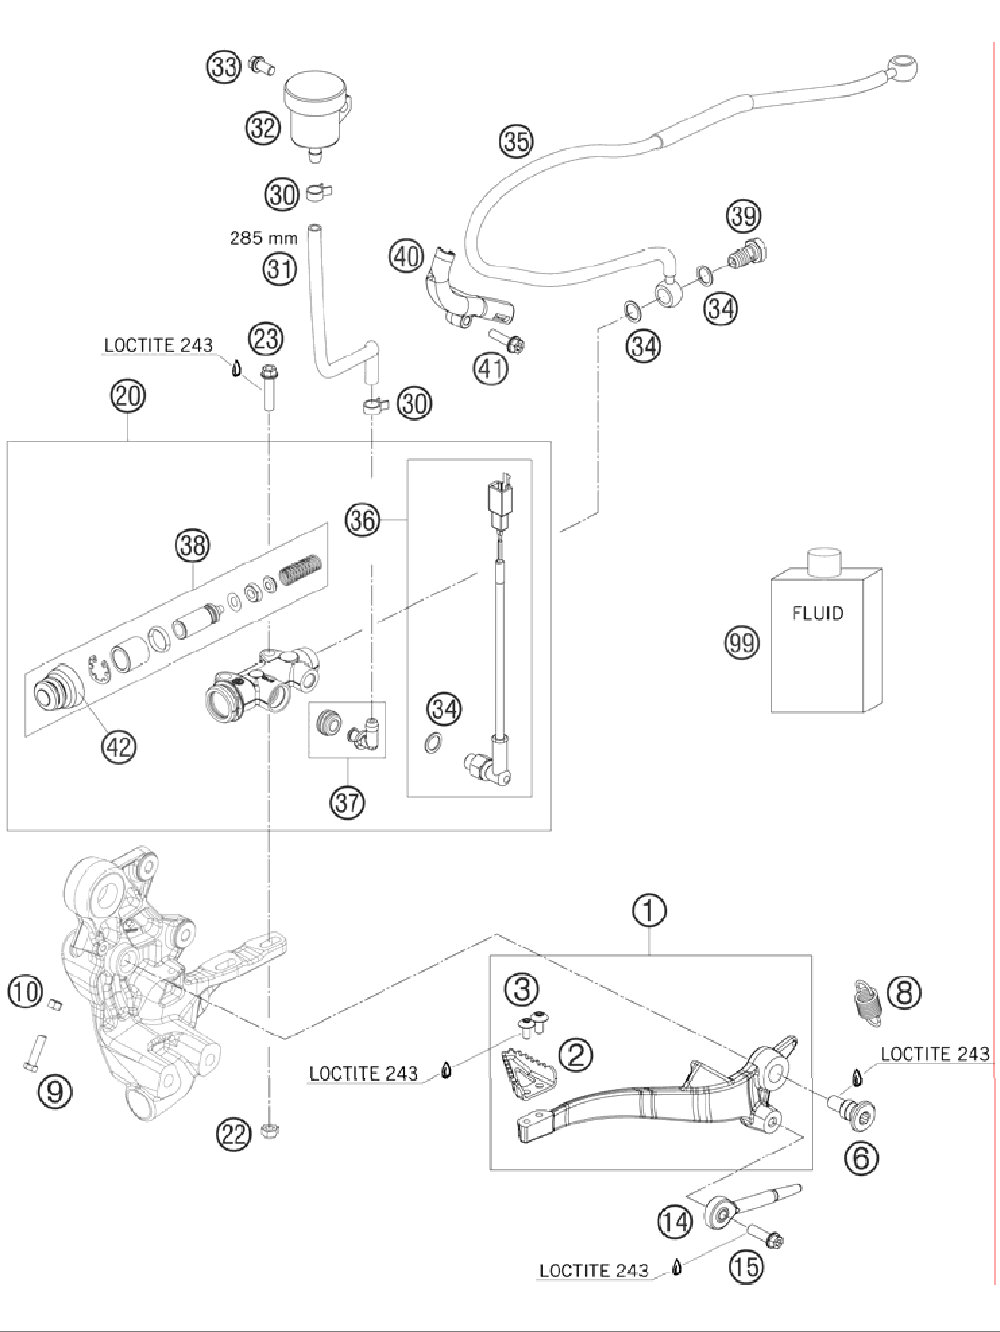 Smc Atv Wiring Diagram moreover 251353697685 furthermore Dirtbike Coloring Pictures in addition Wiring Diagram Ktm 500 Exc 2016 moreover 280878951394. on ktm 525 xc atv